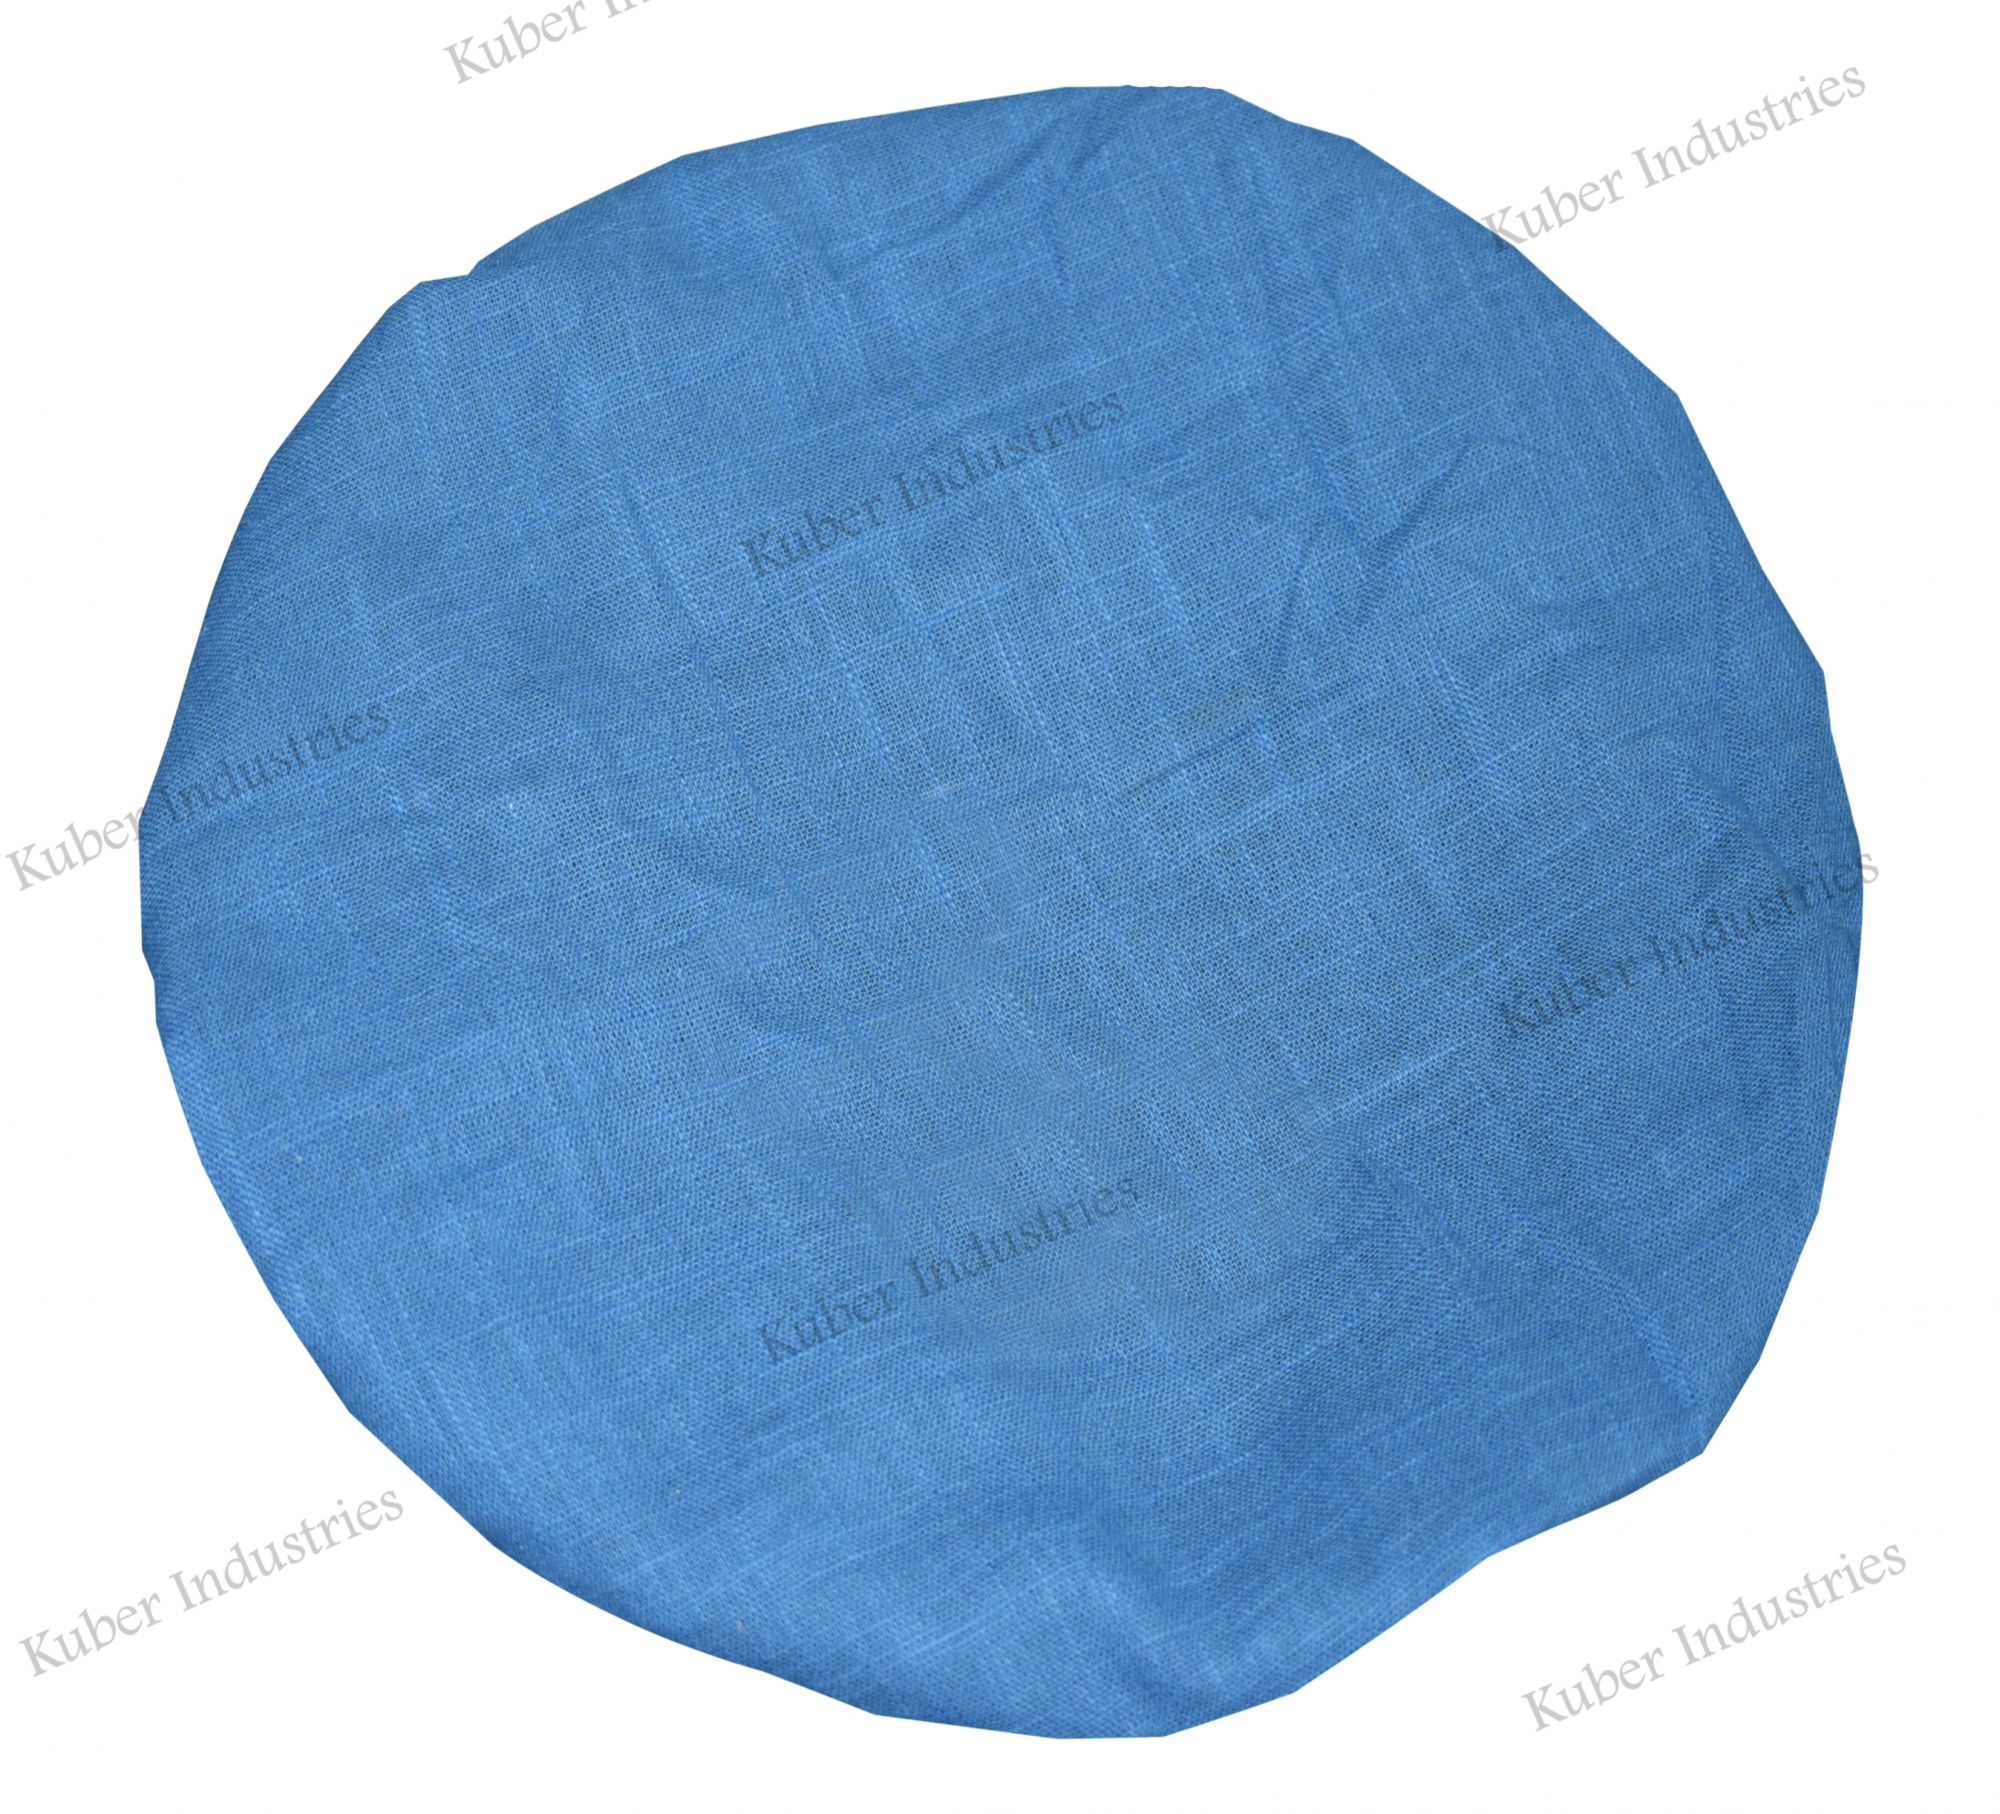 Kuber Industries 100% Cotton Reusable Stretchable Anti Pollution Caps, Surgeon Caps (Pack Of-3, Blue)-CTKTC46341